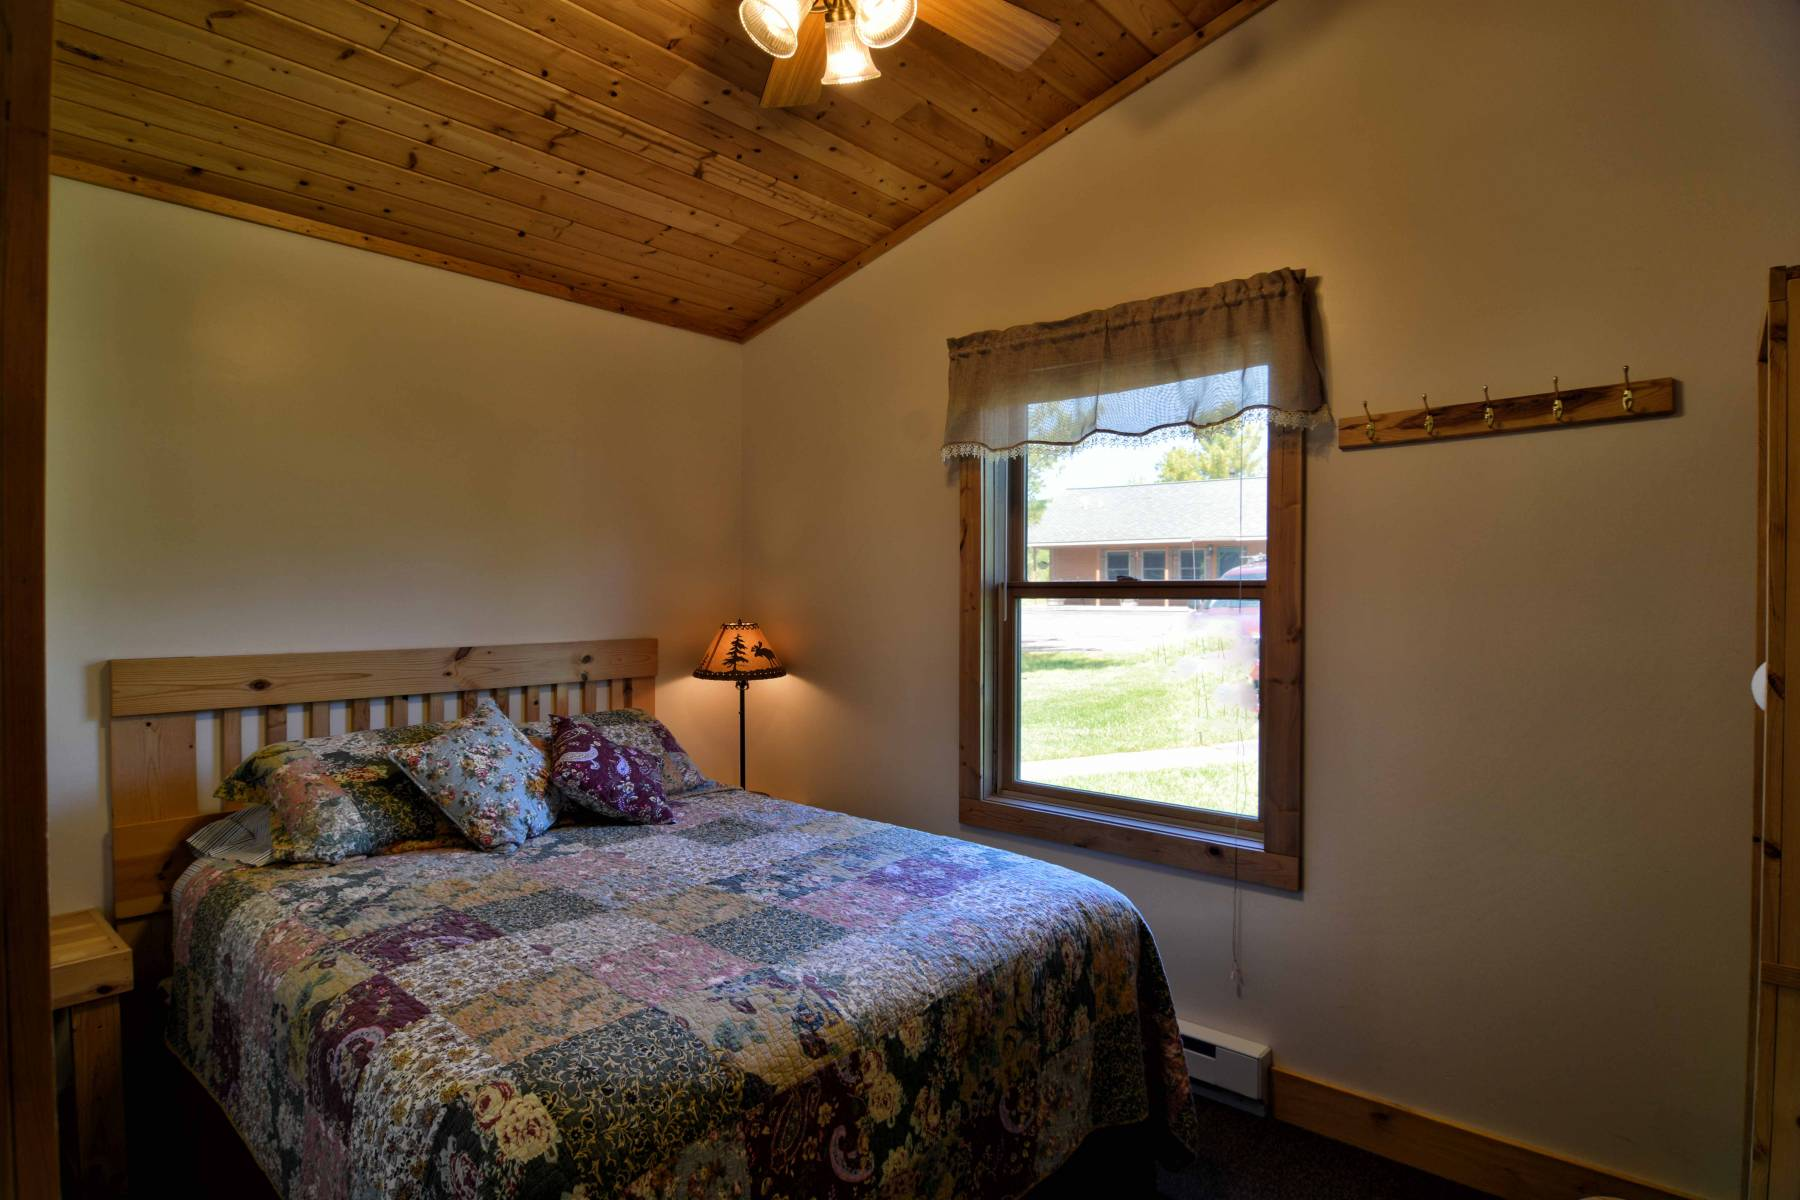 This Cottage Has Two Bedrooms, One Bathroom, A Sofa Sleeper, A Kitchen With  2 Burner Stove Top (no Oven), Sink, Dishwasher, Refrigerator, Coffee Maker,  ...